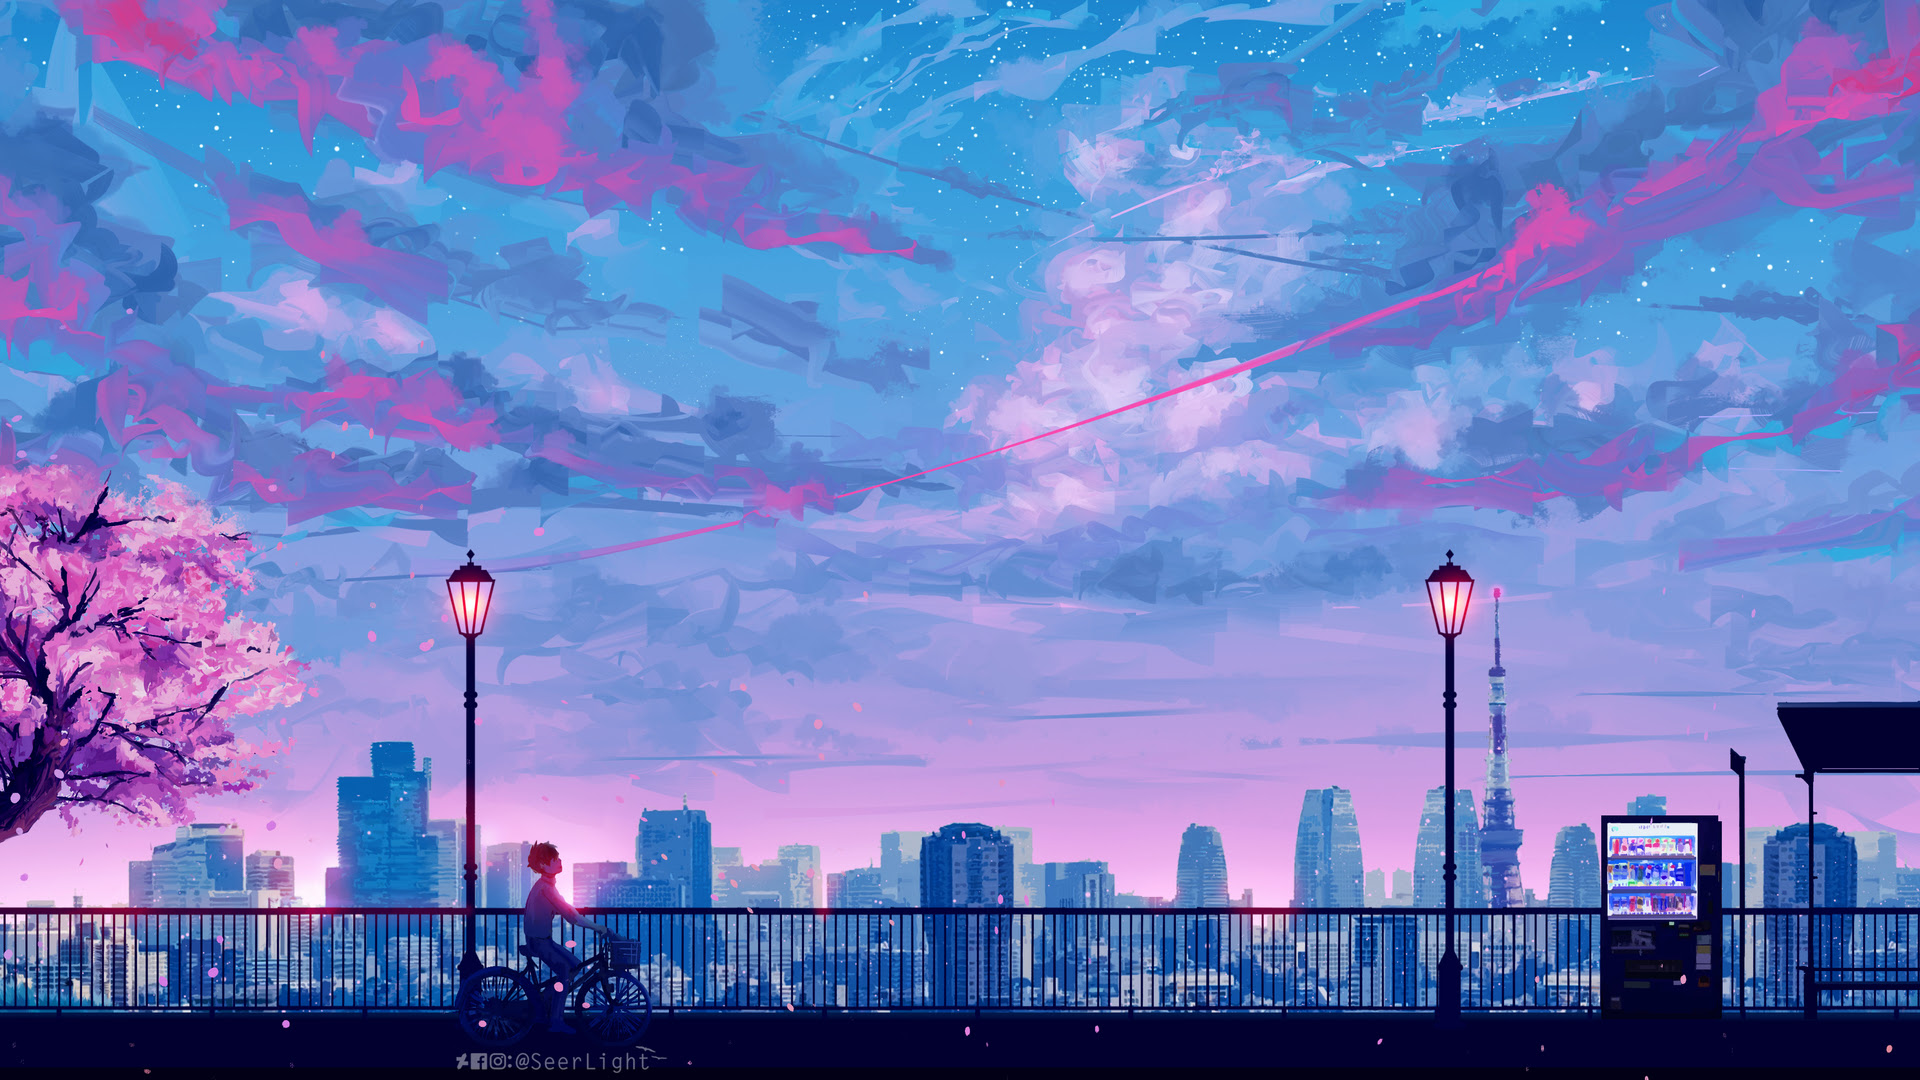 Aesthetic Anime Wallpaper 1920x1080